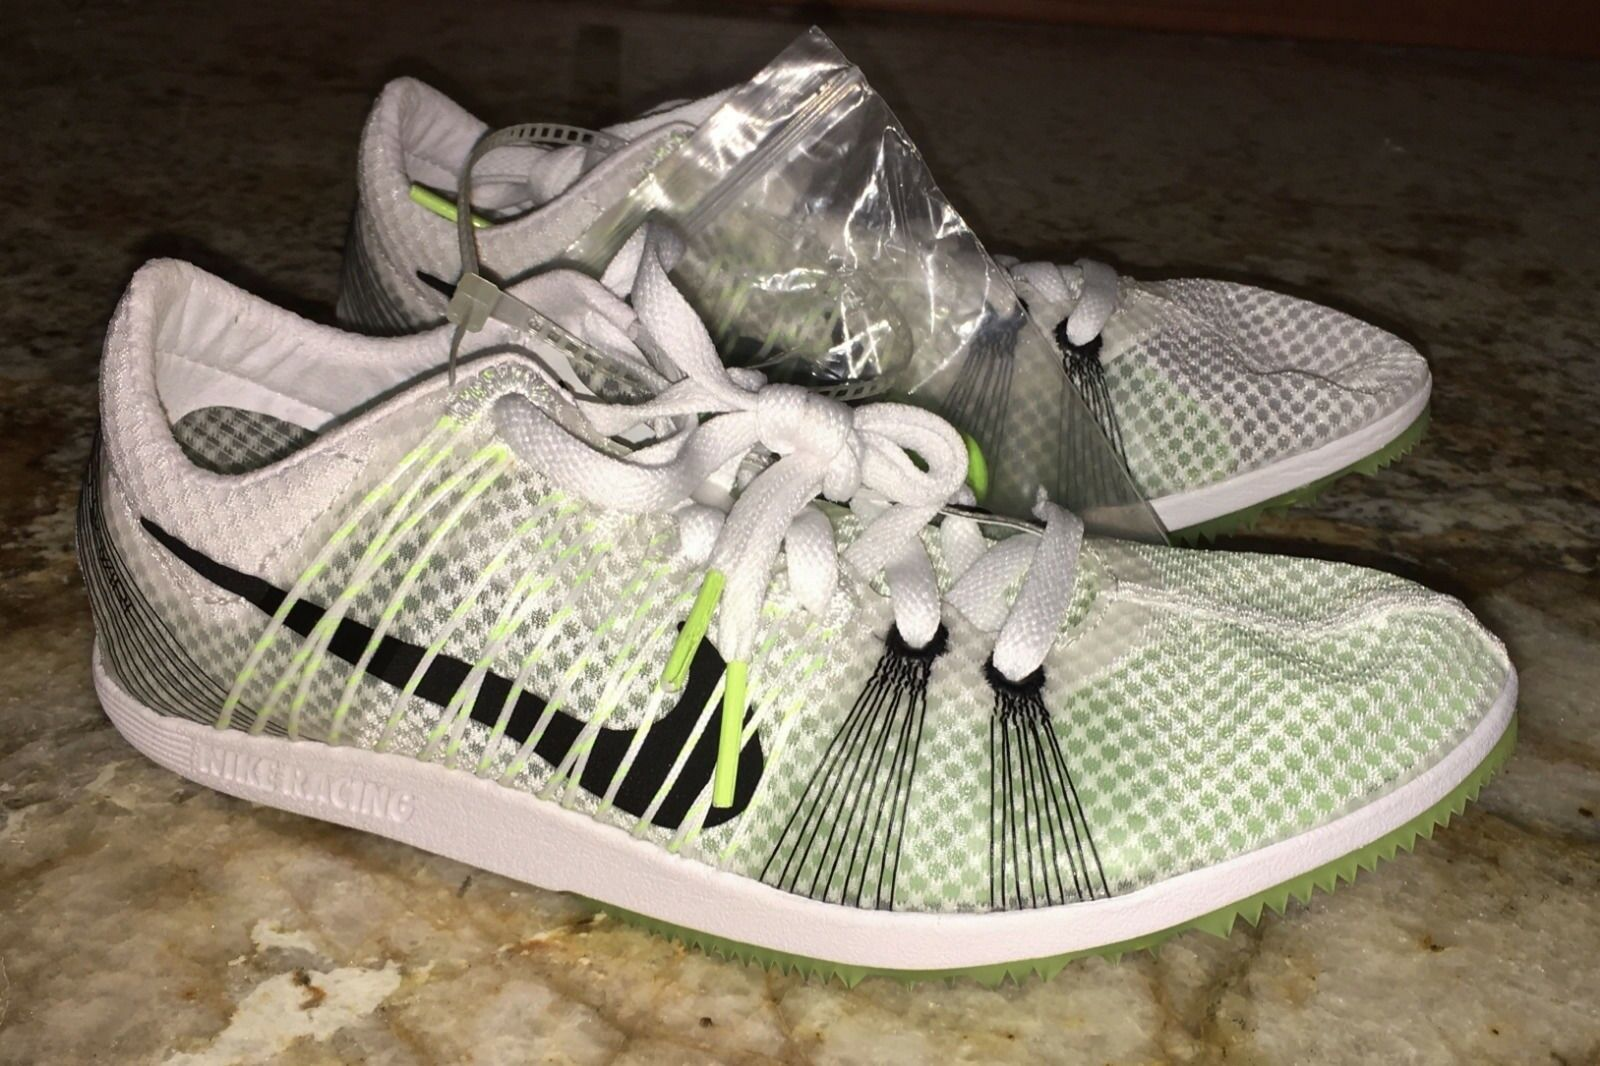 NIKE Matumbo 2 White Mid Distance Track Spikes shoes Youth 4 5 Mens 13 14 15